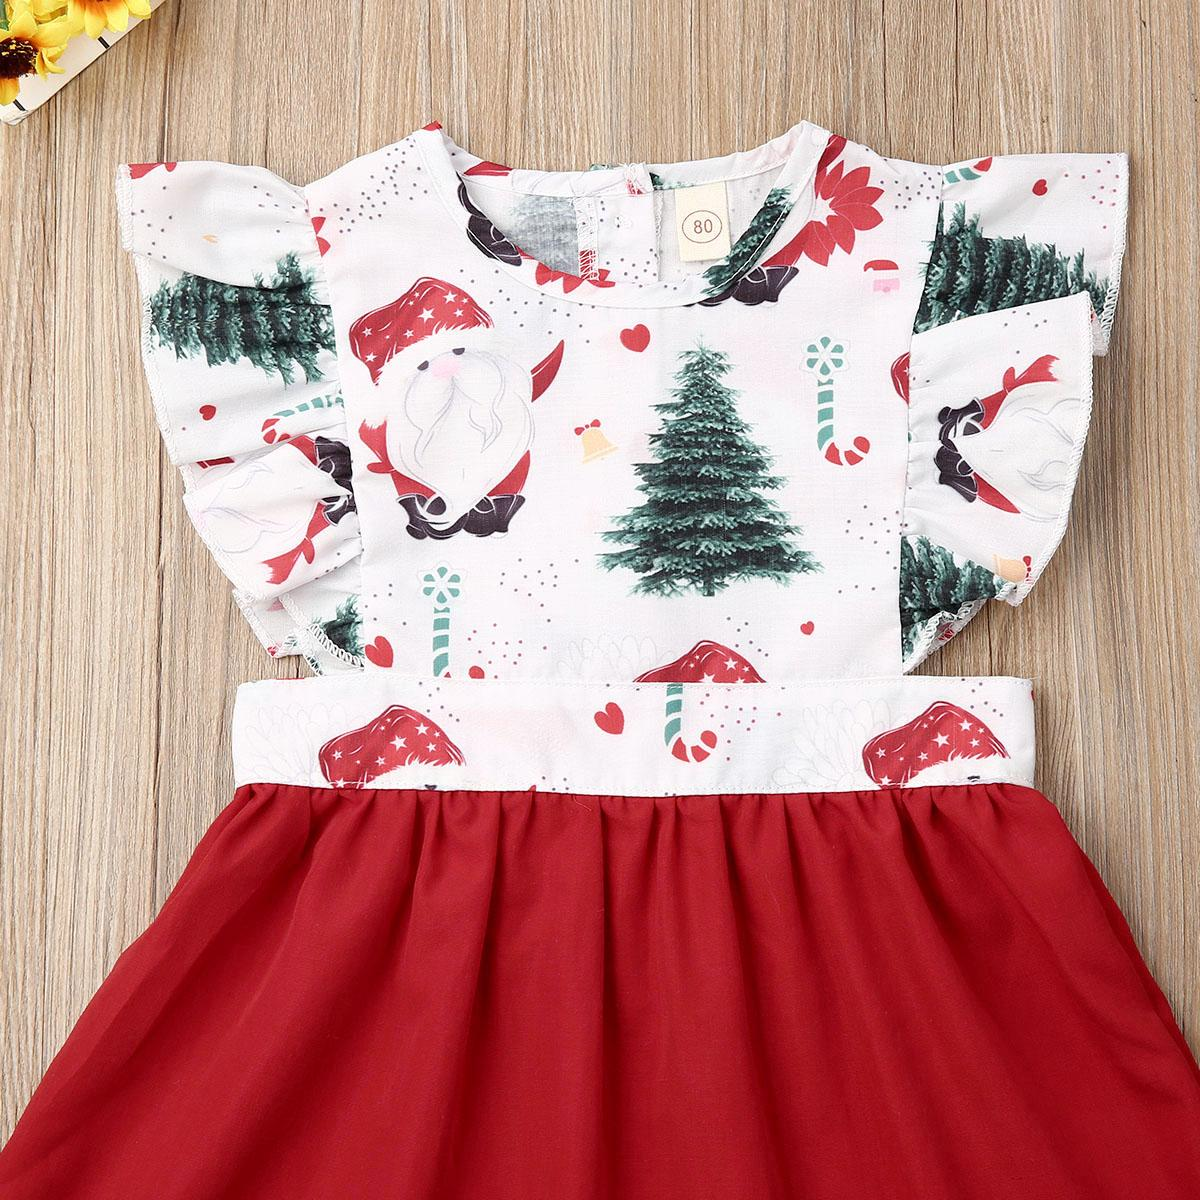 Toddler Baby Girl Christmas Clothes Sister Matching Xmas Set Romper Dress Outfit